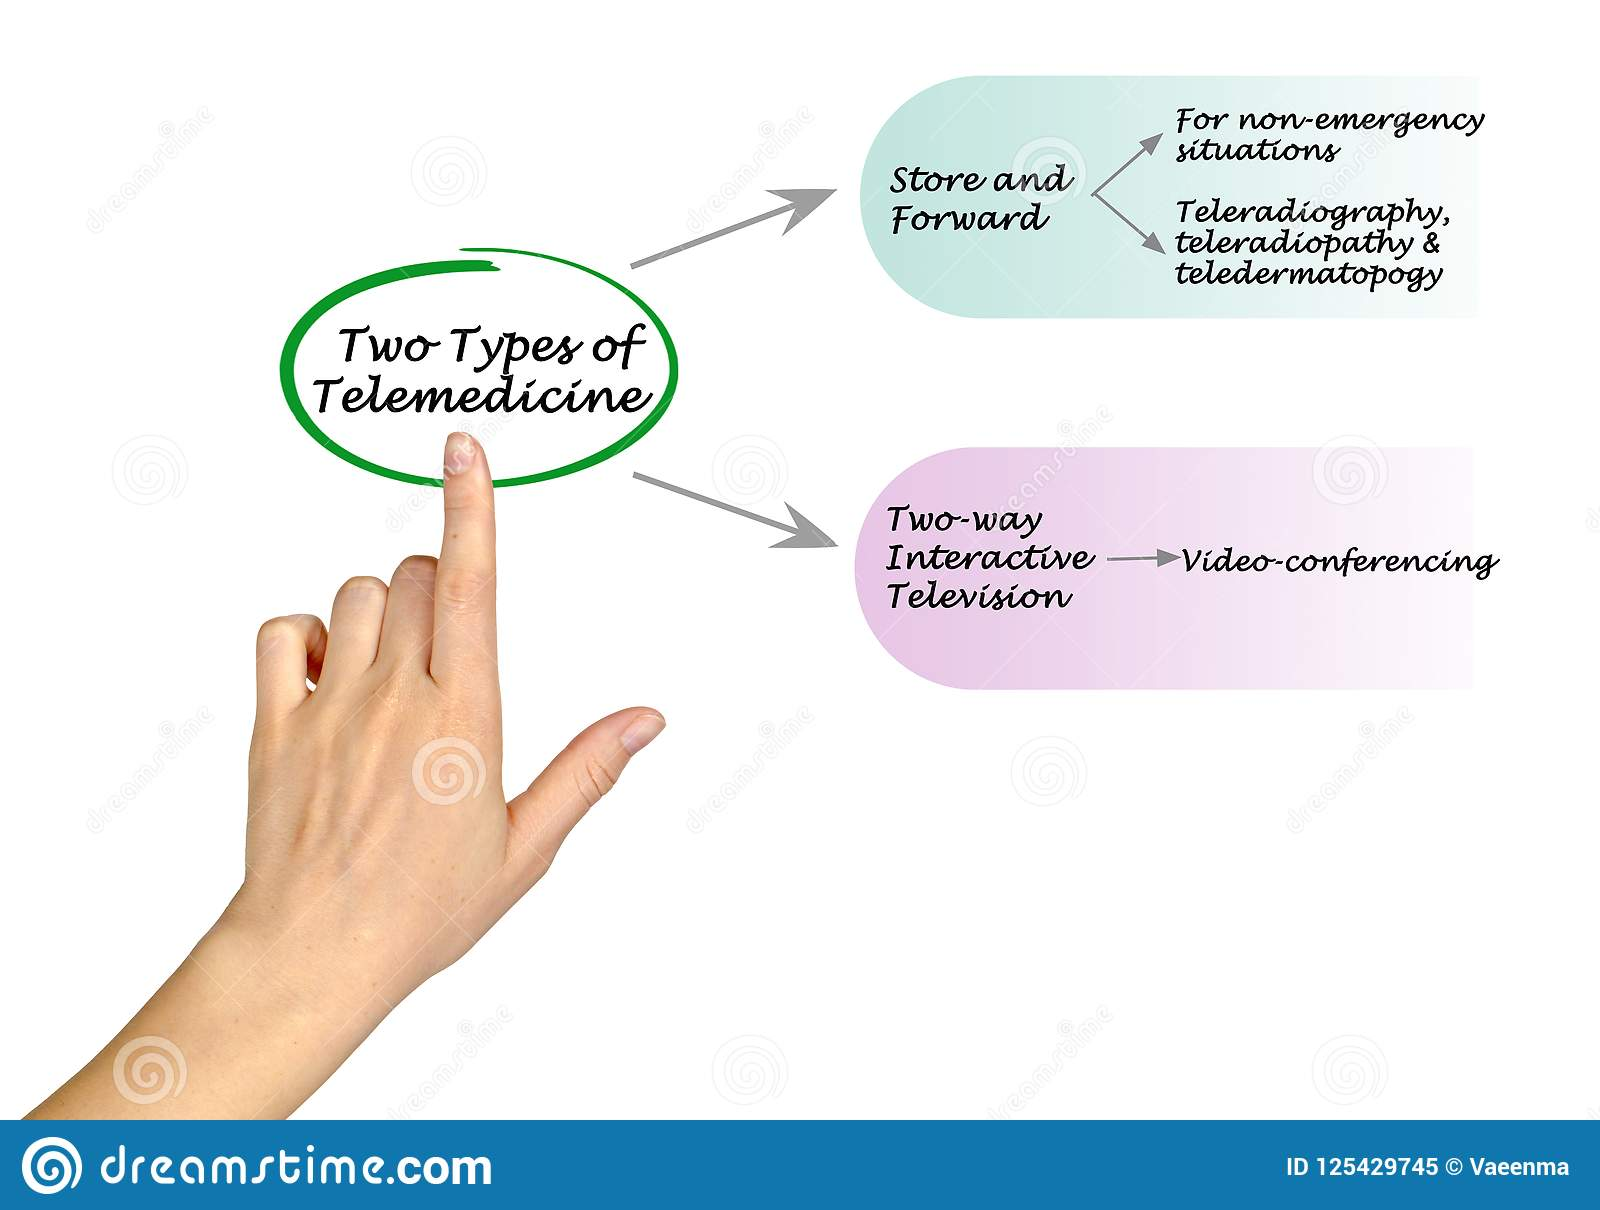 Two Type of Telemedicine